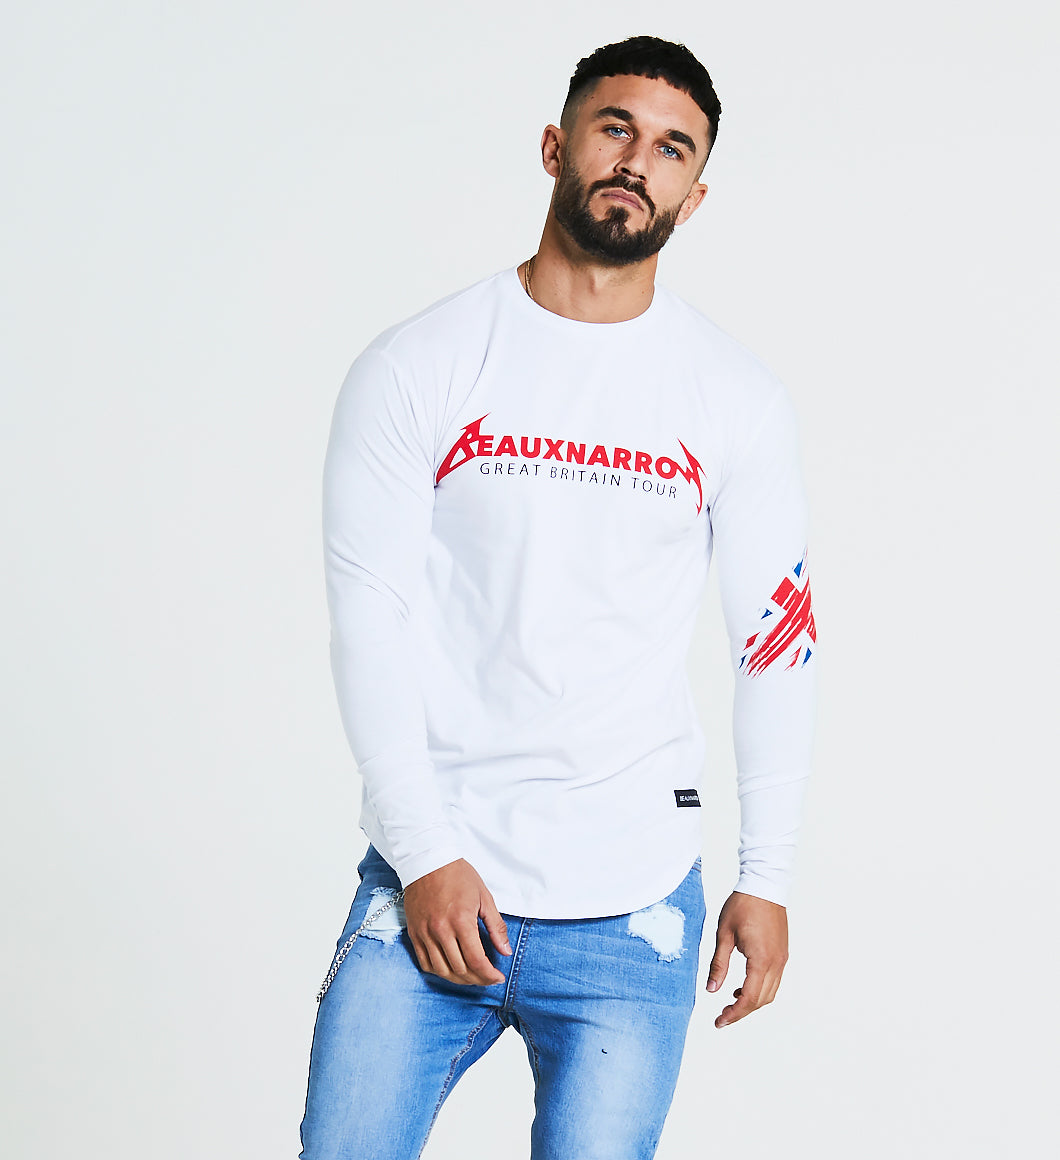 BEAUXNARROW TOUR LOGO L/S T-SHIRT - WHITE/RED